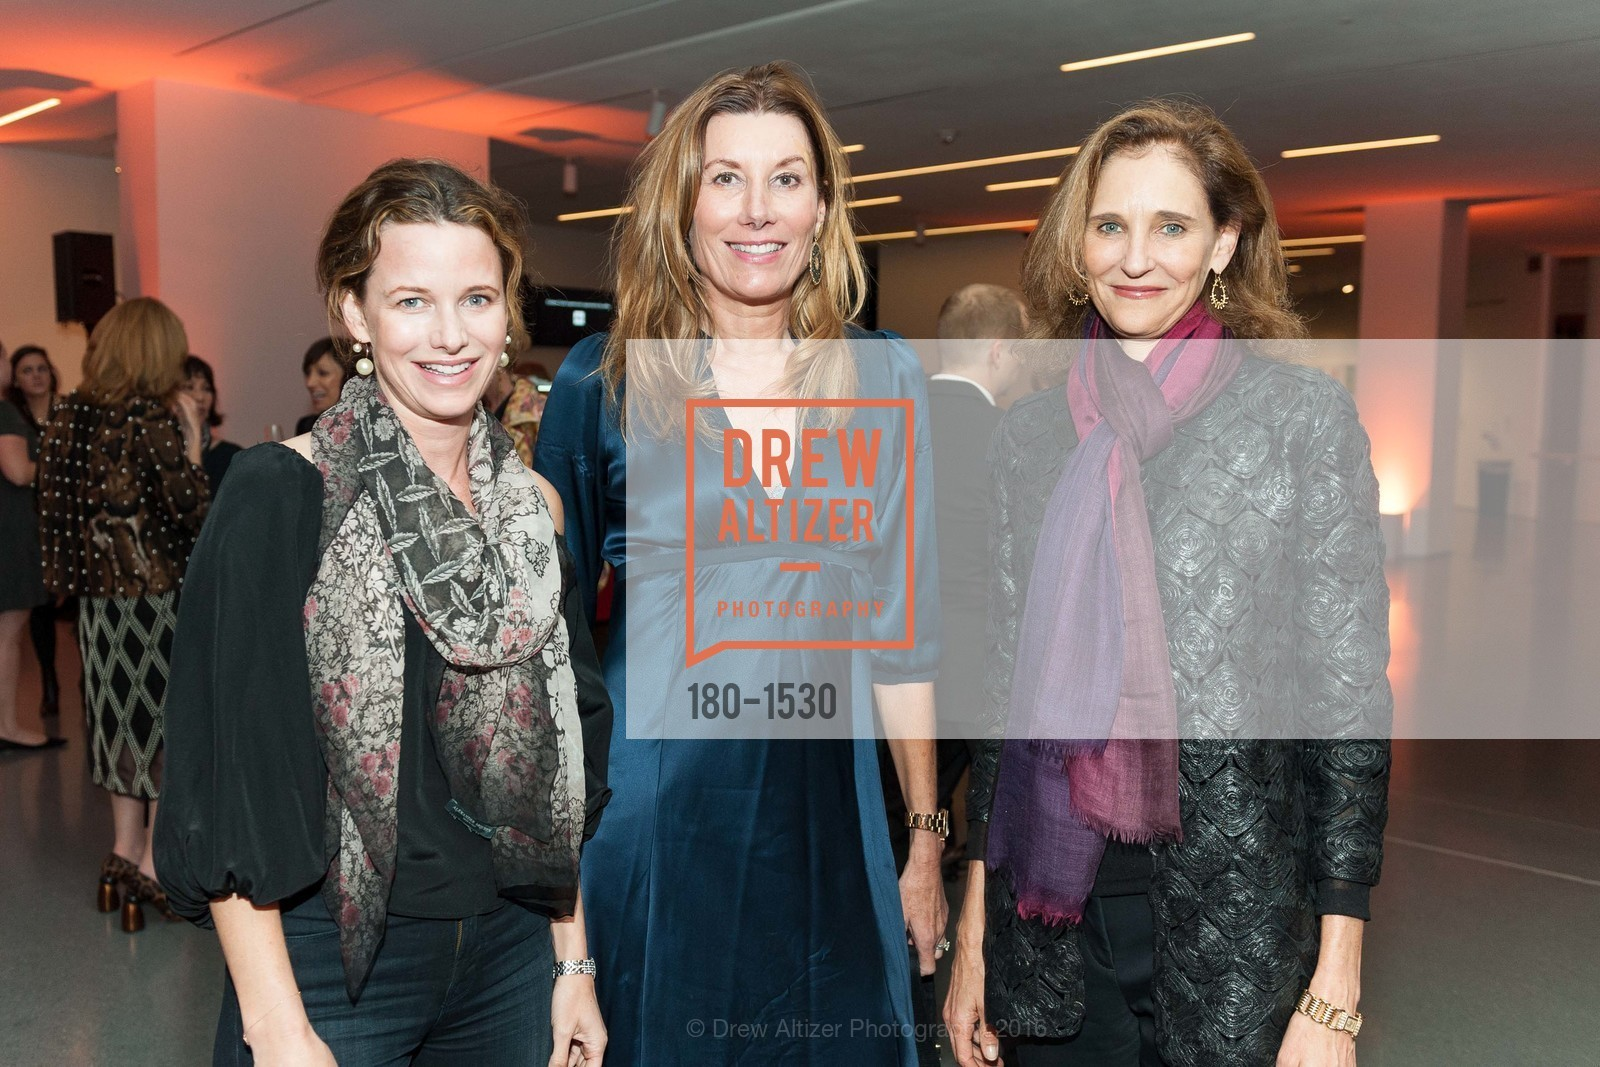 Lindsay Bolton, Susan Dunlevy, Jennifer Biederbeck, Photo #180-1530